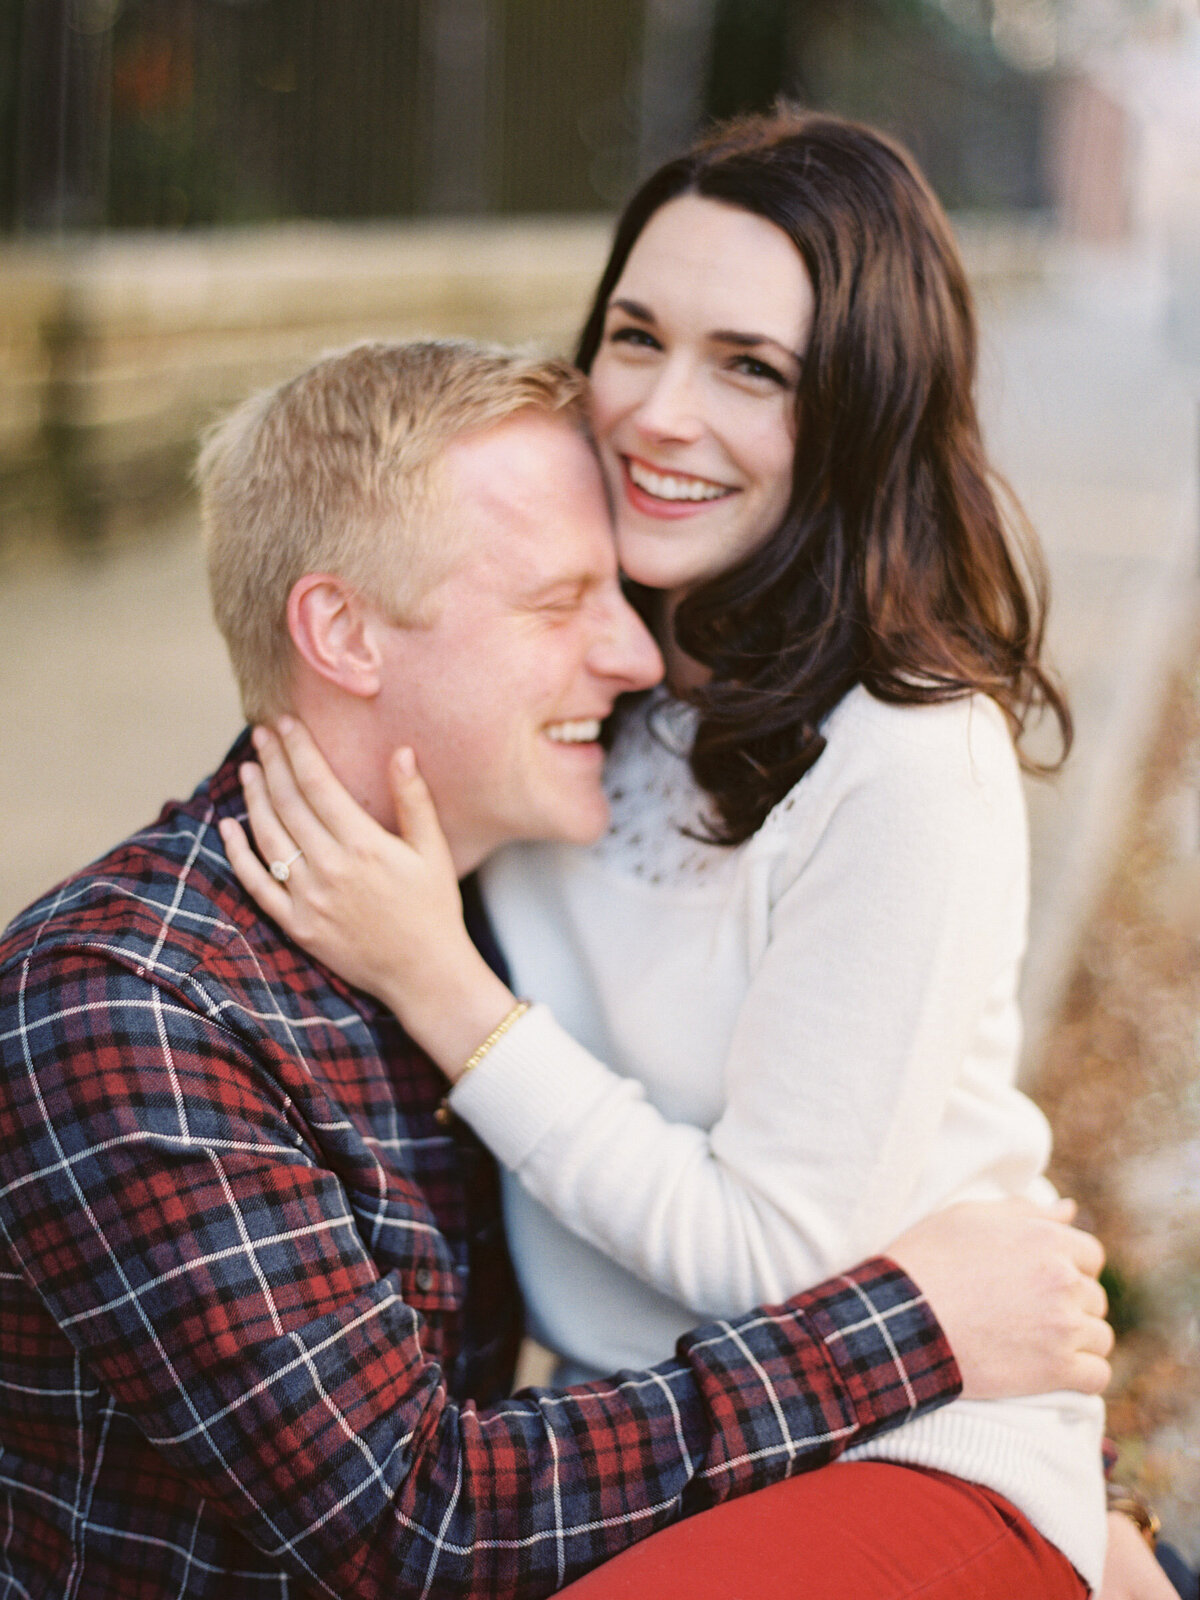 charleston-fall-engagement-photos-by-philip-casey-018